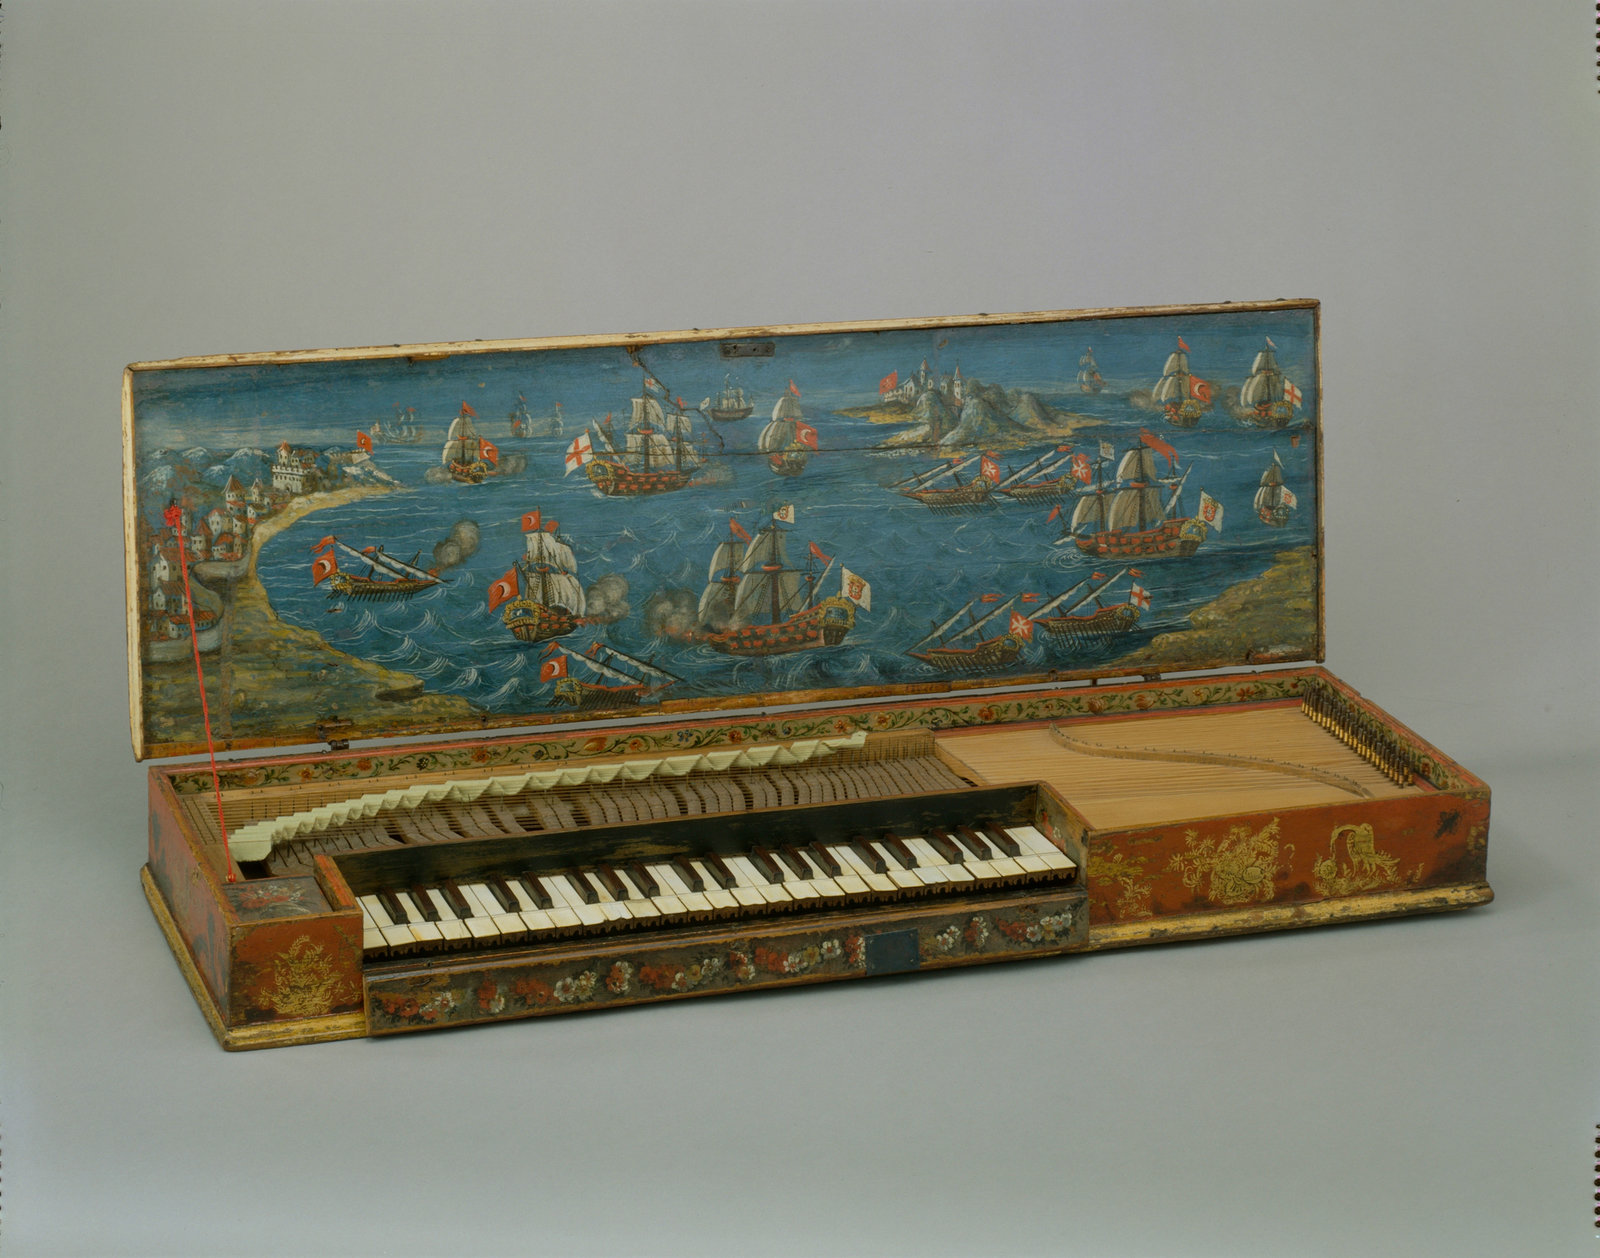 Clavicorde de Lépante, Unknown, [This sixteenth-century instrument is important both as a very early example of a clavichord and as a beautiful piece of decorative art. A clavichord is a keyboard instrument in which the strings are set into vibration by being hit by a metal blade (tangent) when a key is operated. As with the piano (but unlike the organ and harpsichord), the harder a key is hit the louder the sound produced. Even at its loudest, however, the clavichord is a quiet instrument suited to domestic use and as a practice instrument for musicians.], Cité de la musique, CC BY-NC-SA